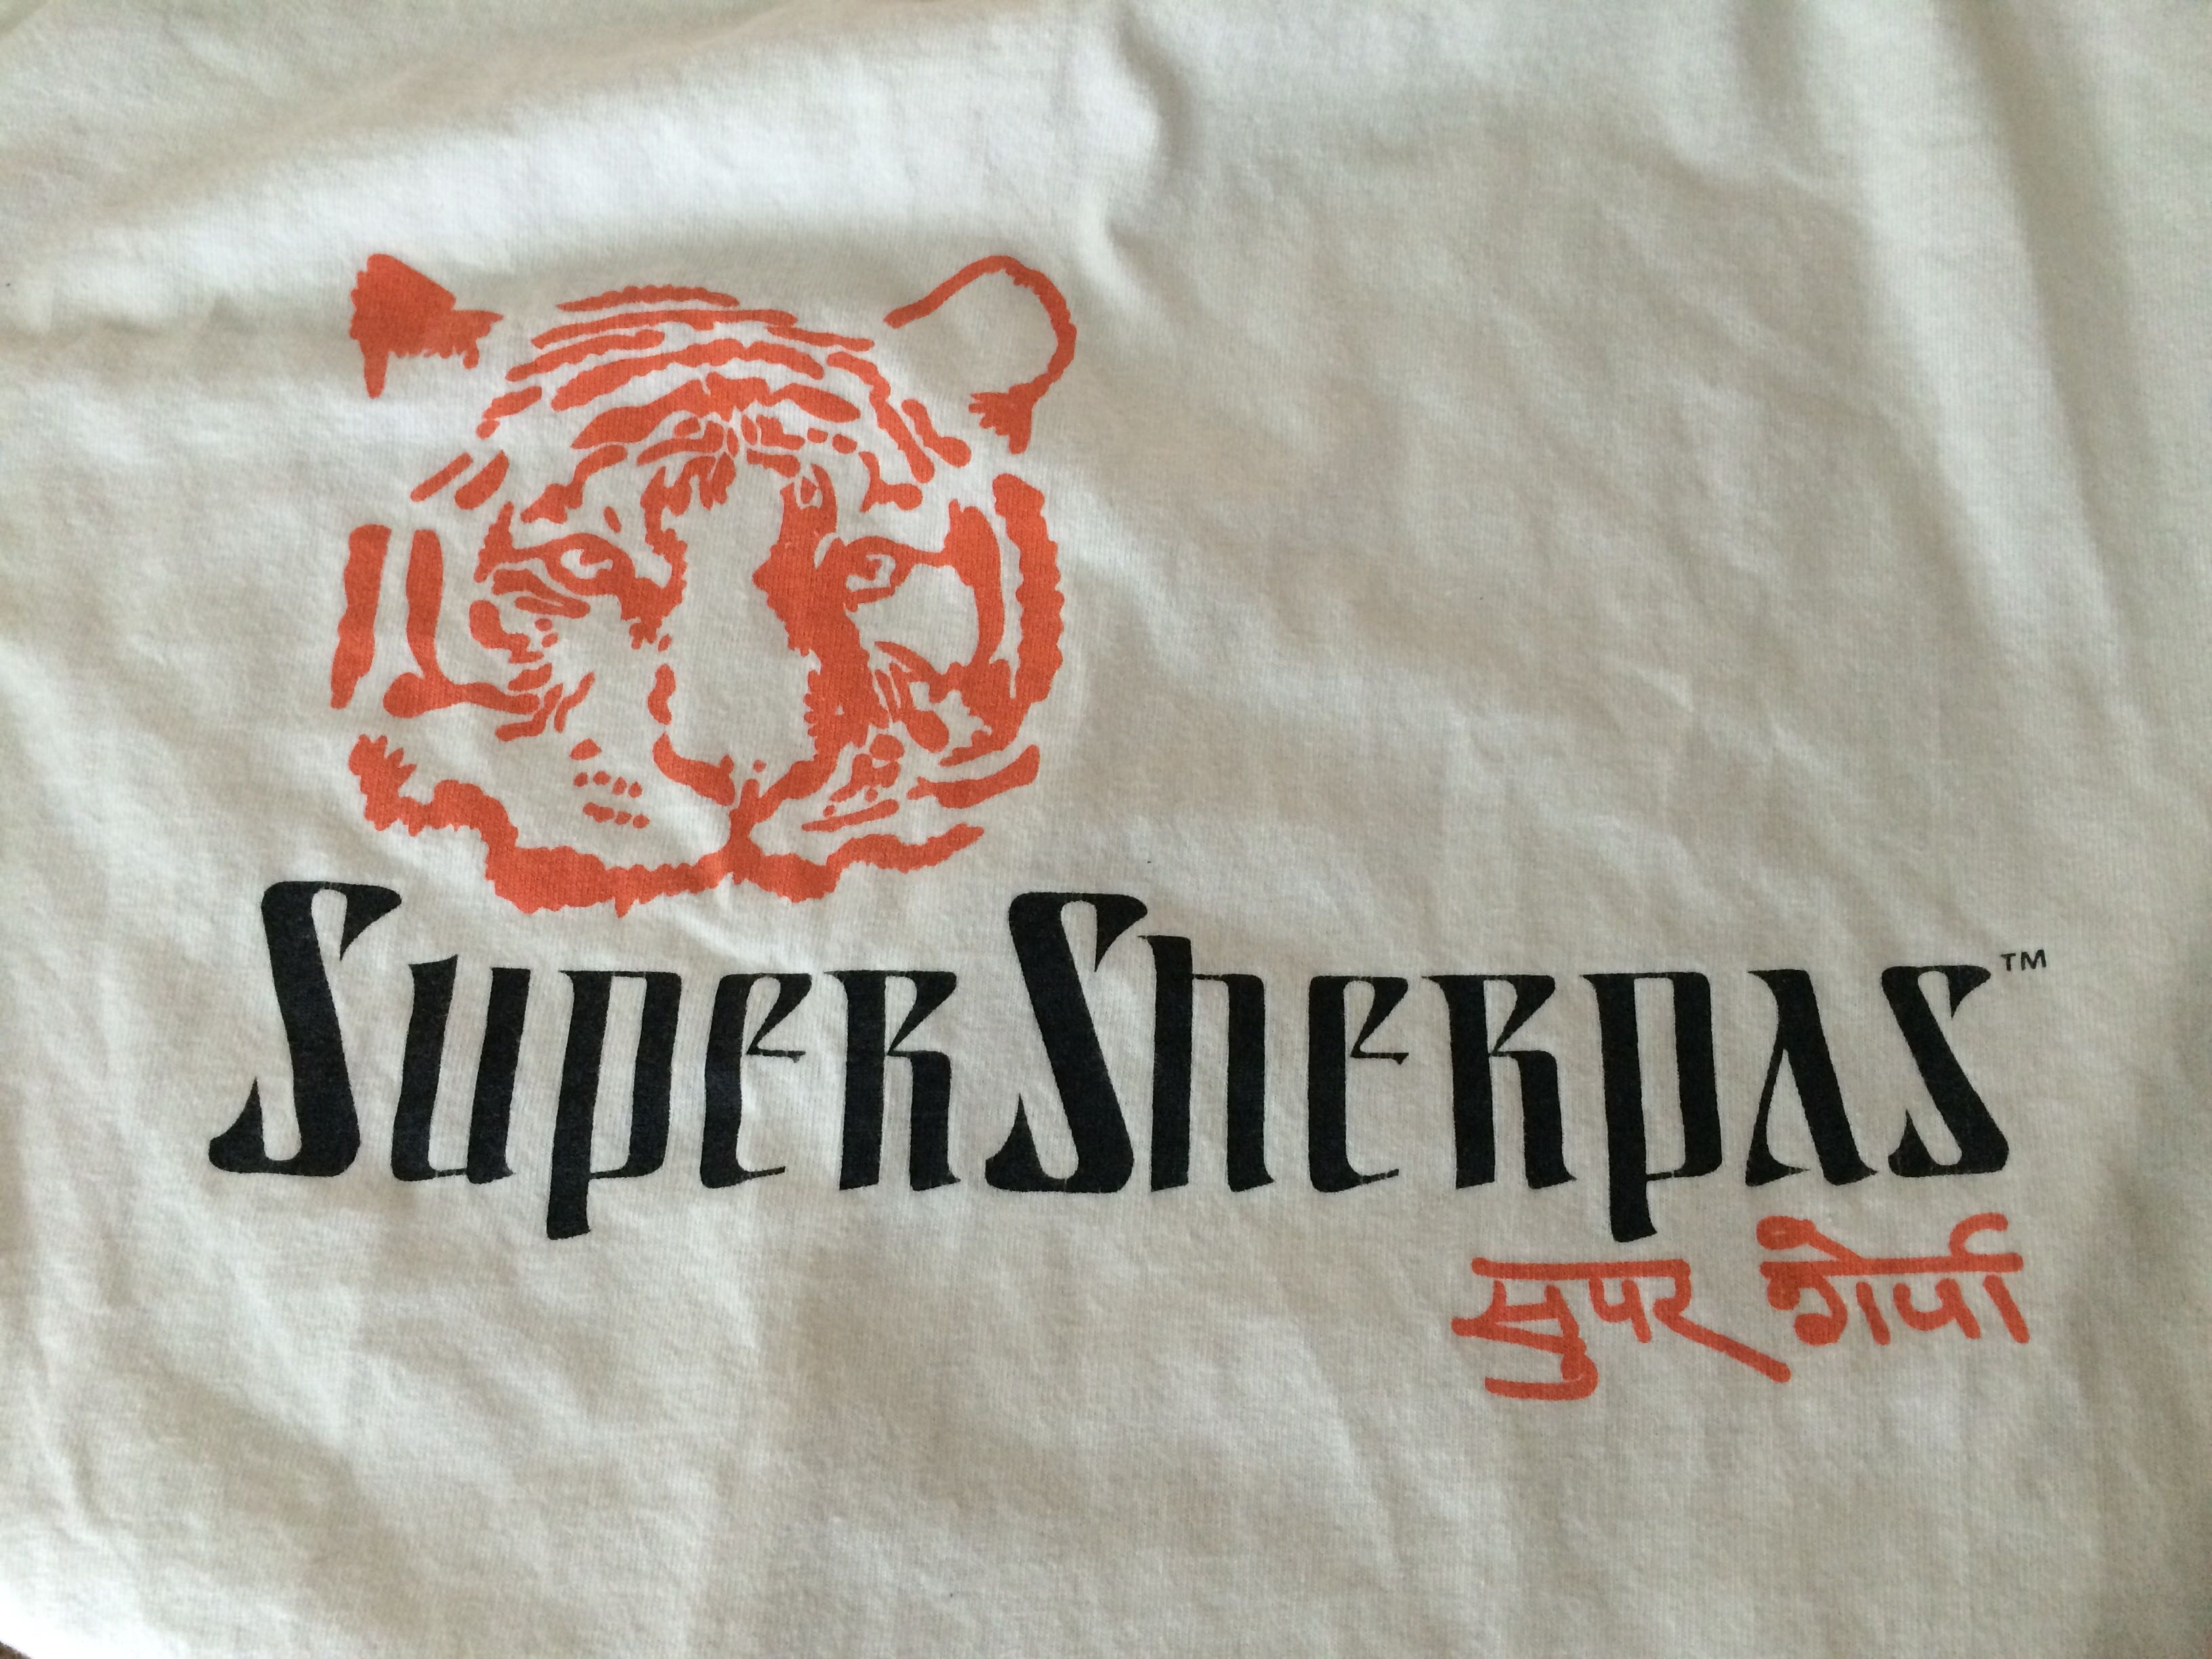 Super Sherpas – The Great Everest Climbers